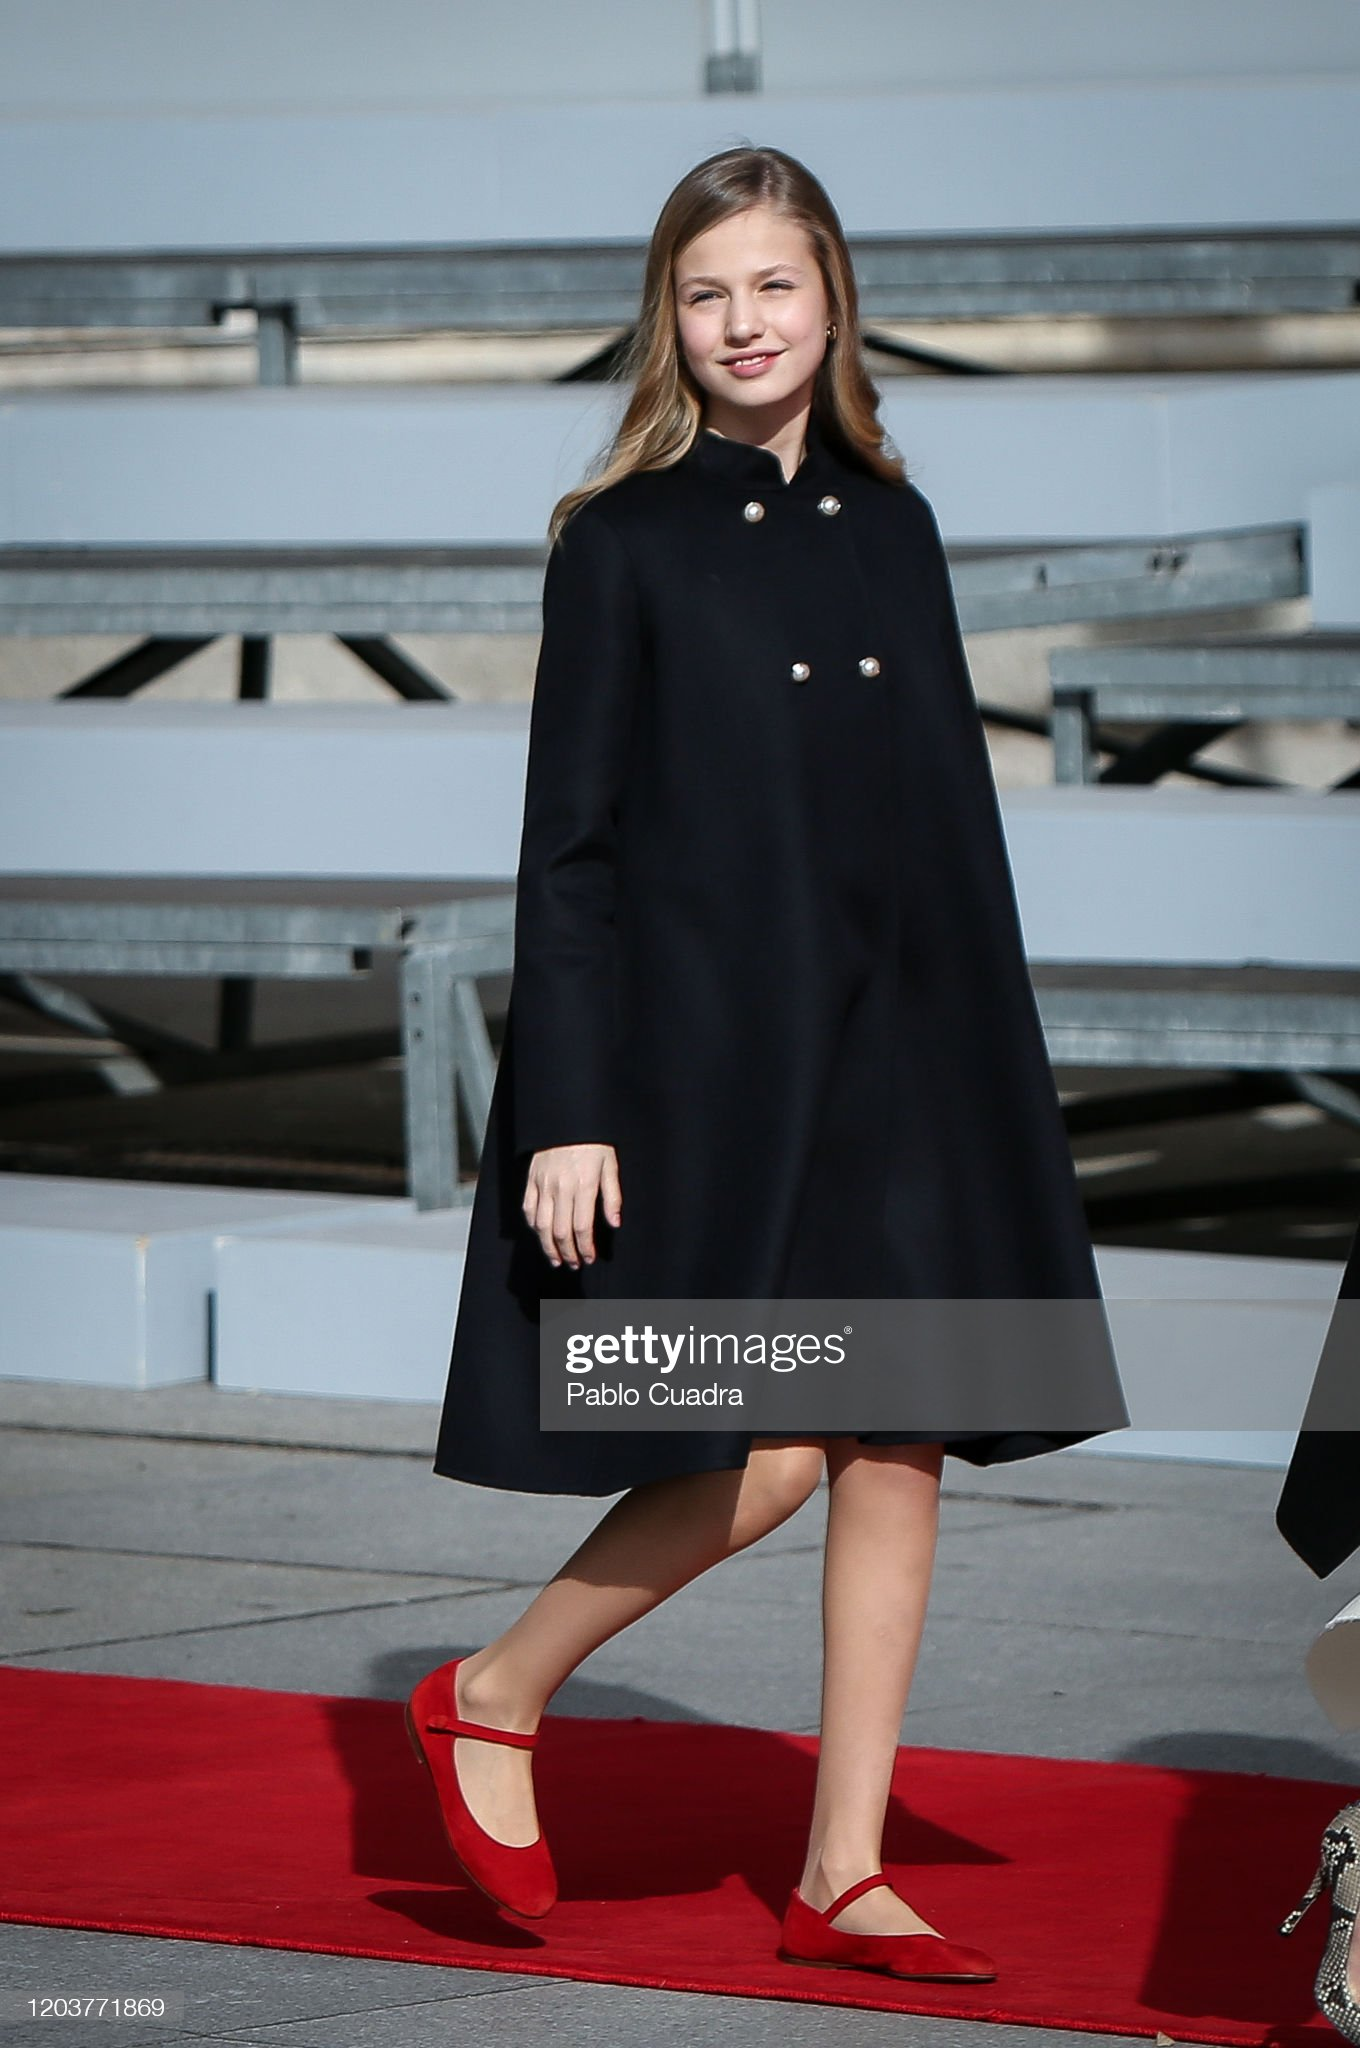 https://media.gettyimages.com/photos/princess-leonor-of-spain-attends-the-solemn-opening-of-the-14th-at-picture-id1203771869?s=2048x2048